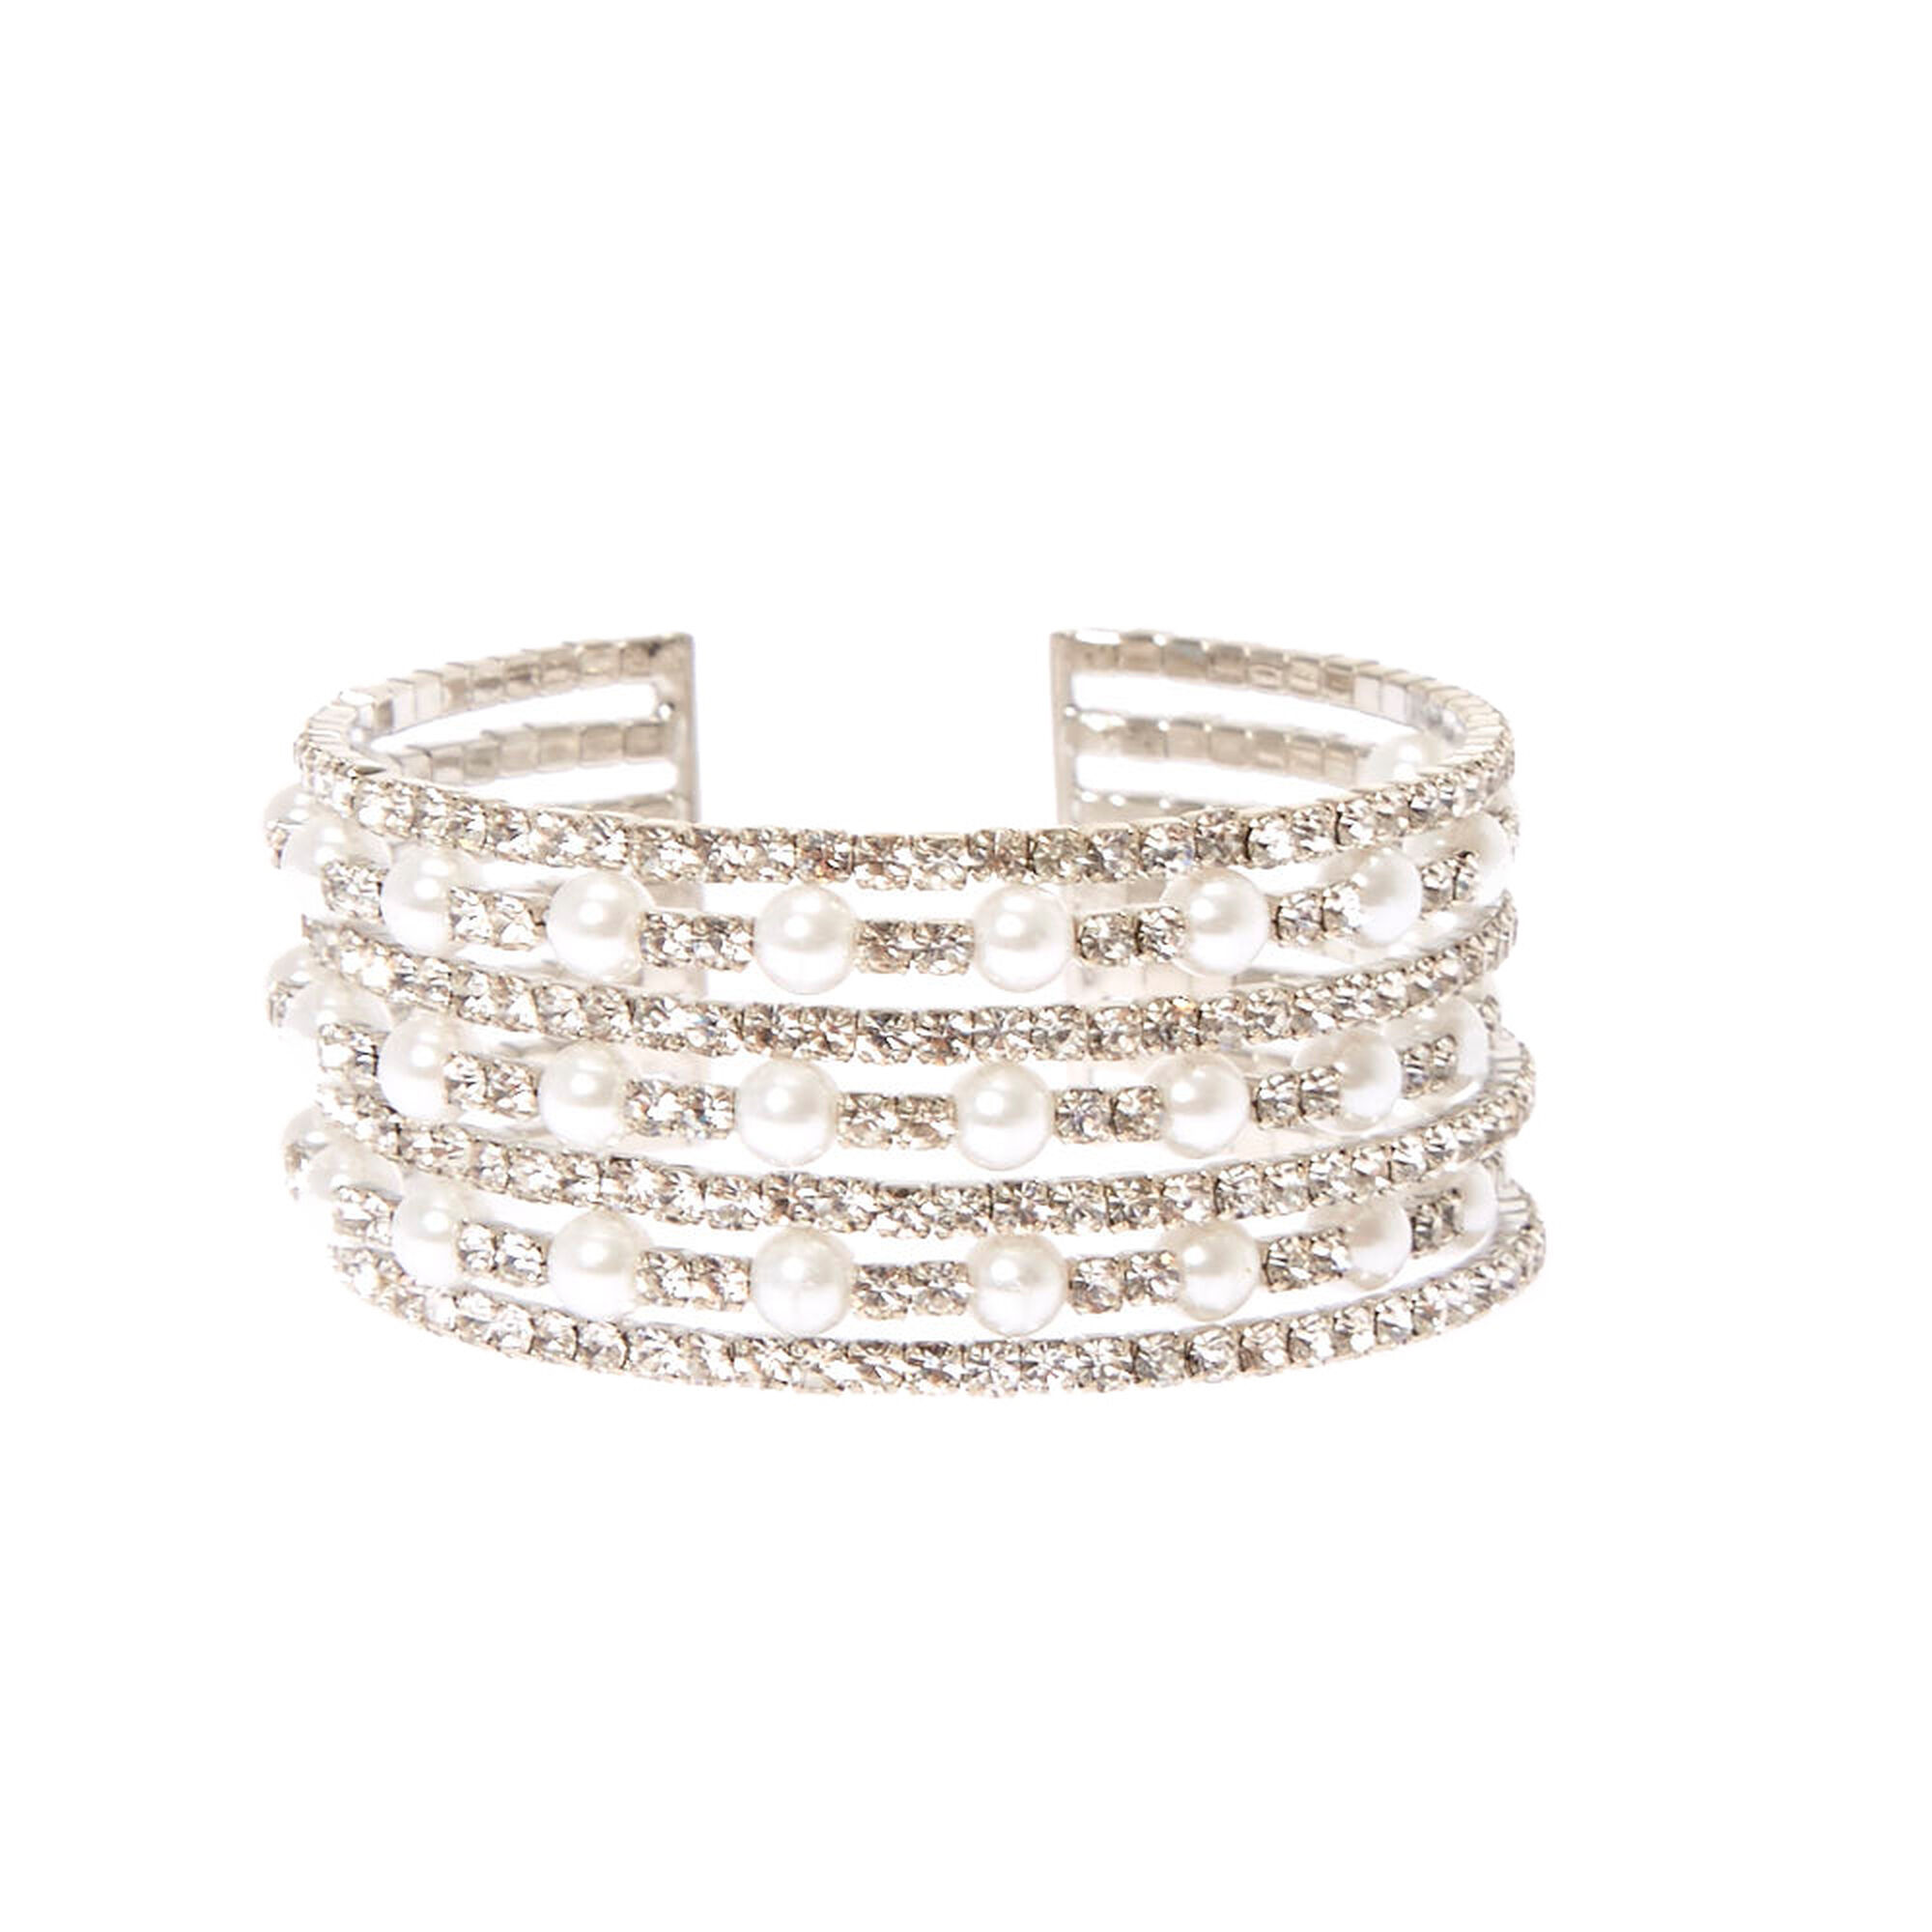 Multi Row Faux Pearl And Crystal Cuff Bracelet